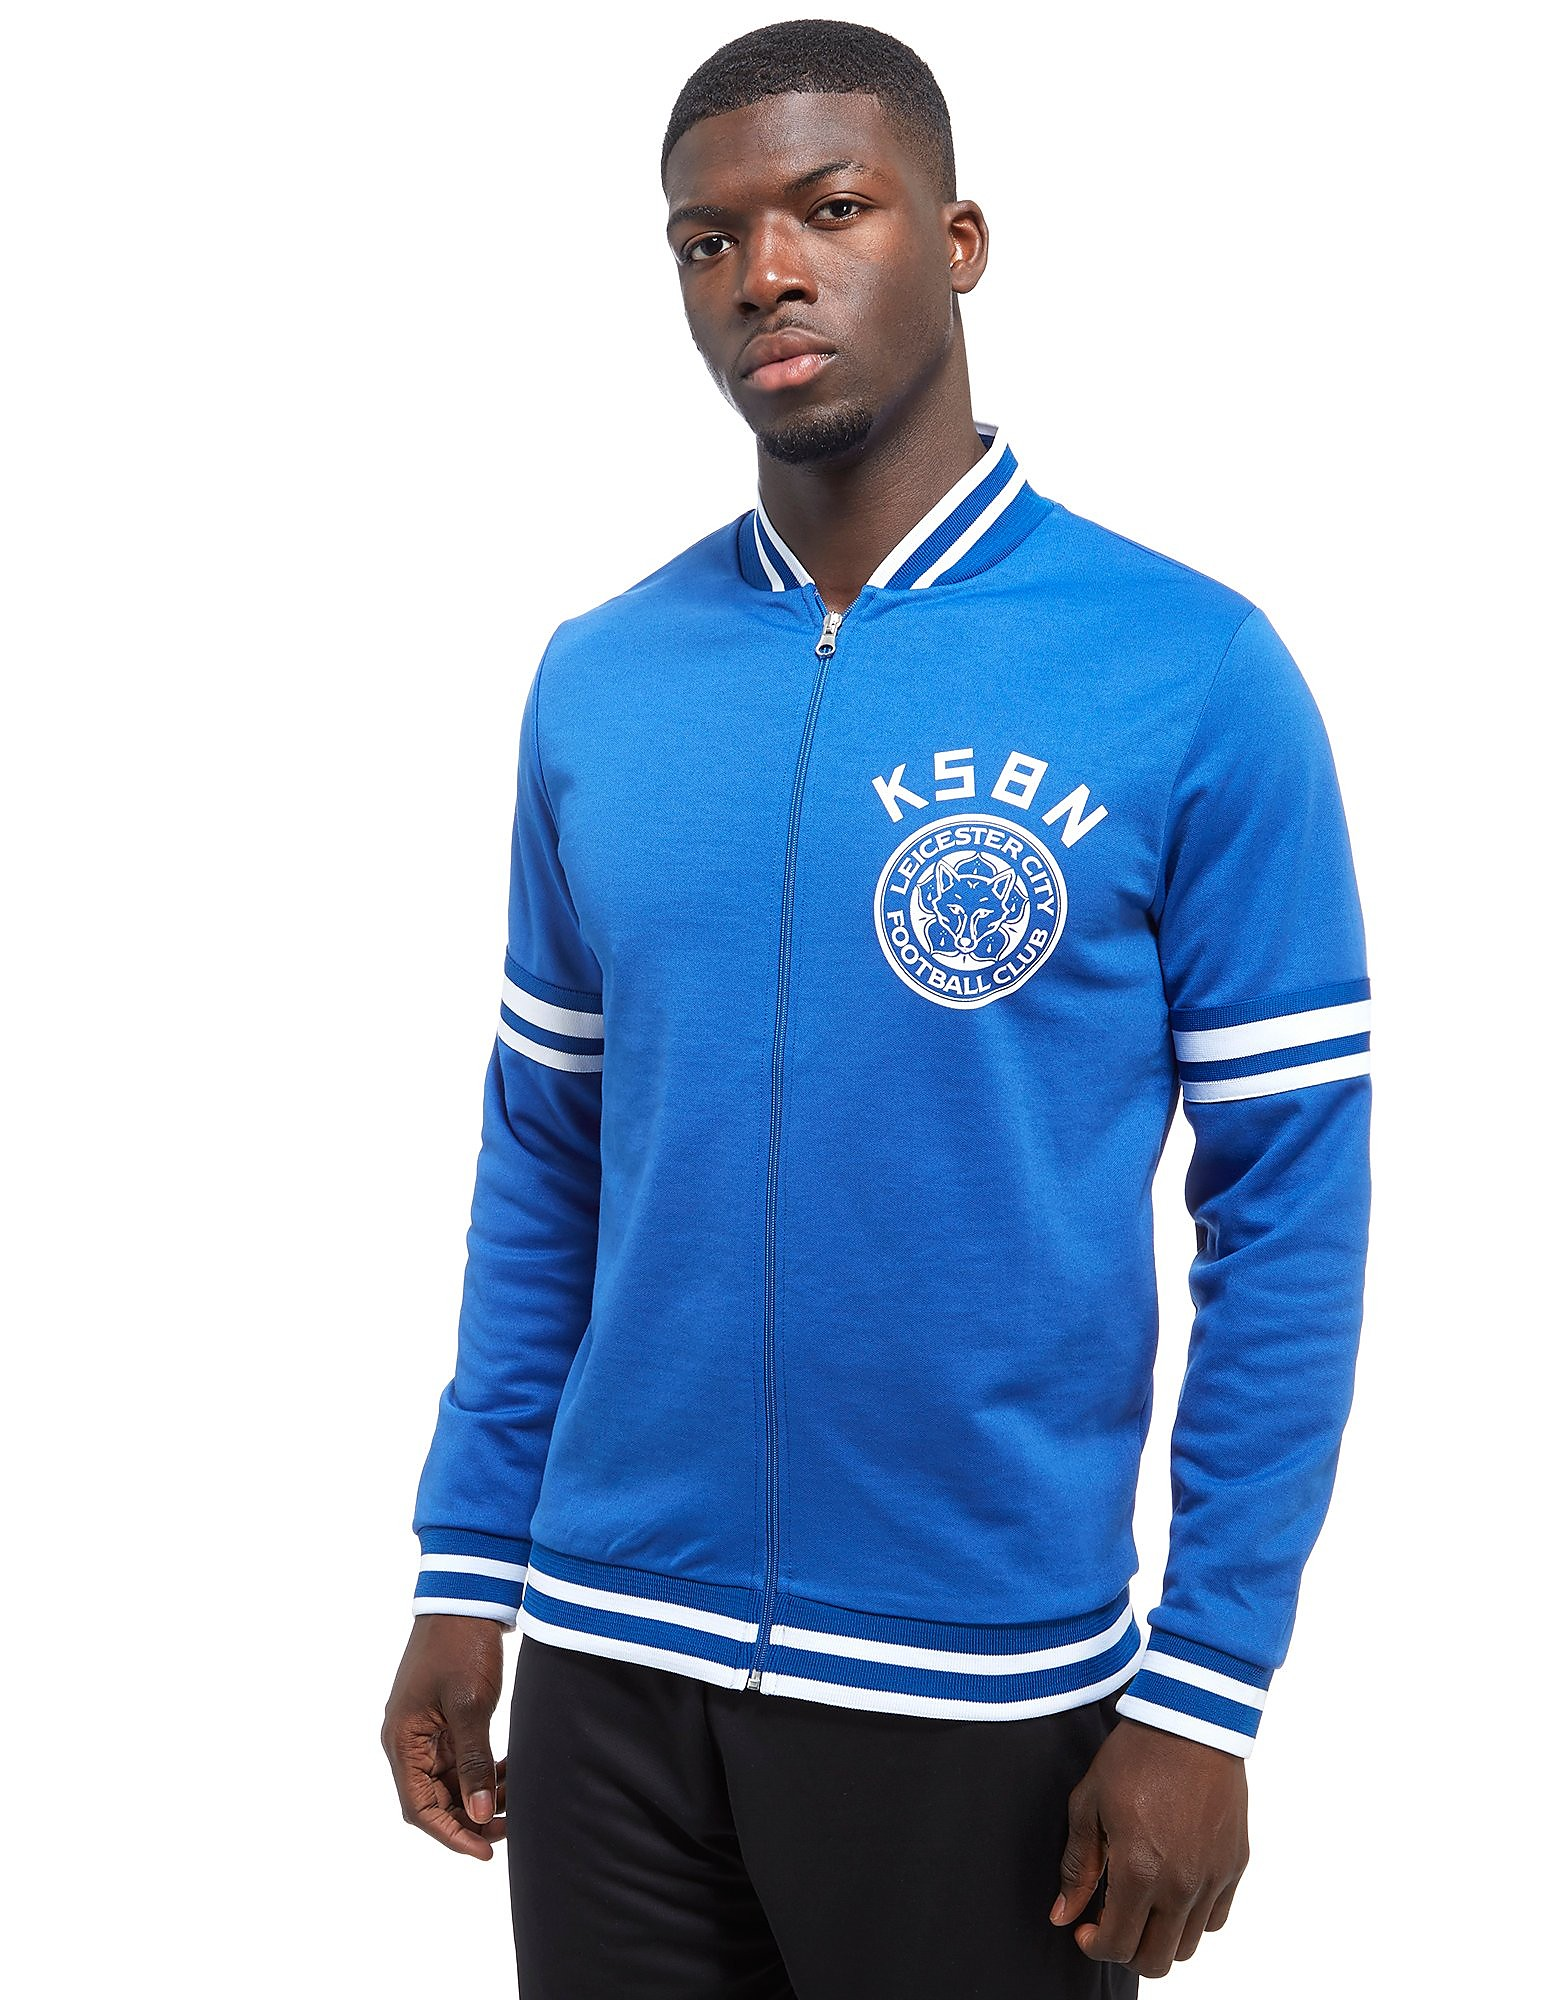 Official Team Leicester City Kasabian Track Top